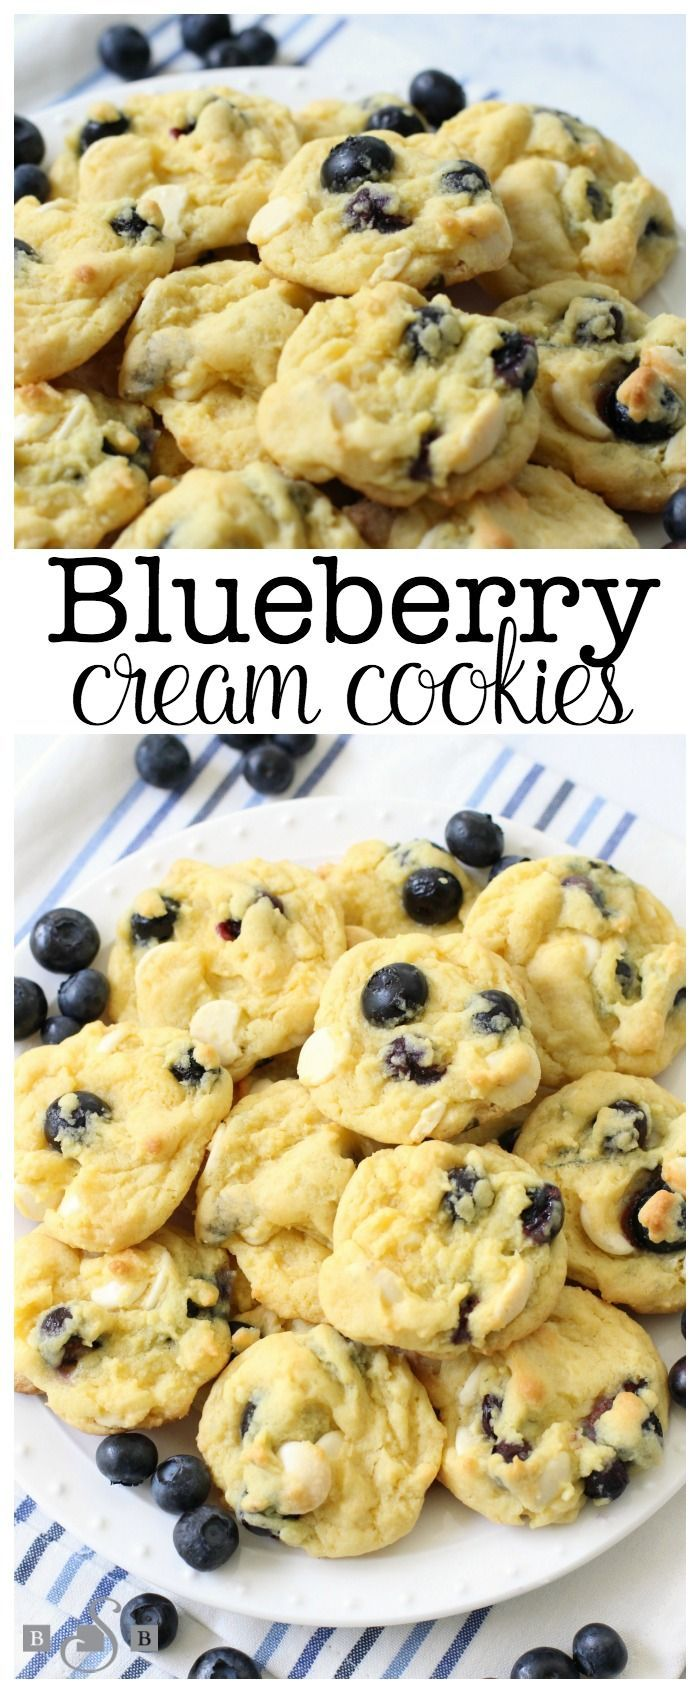 Blueberry Cream Cookies - why haven't I put fresh blueberries in cookies sooner?! These are incredible!